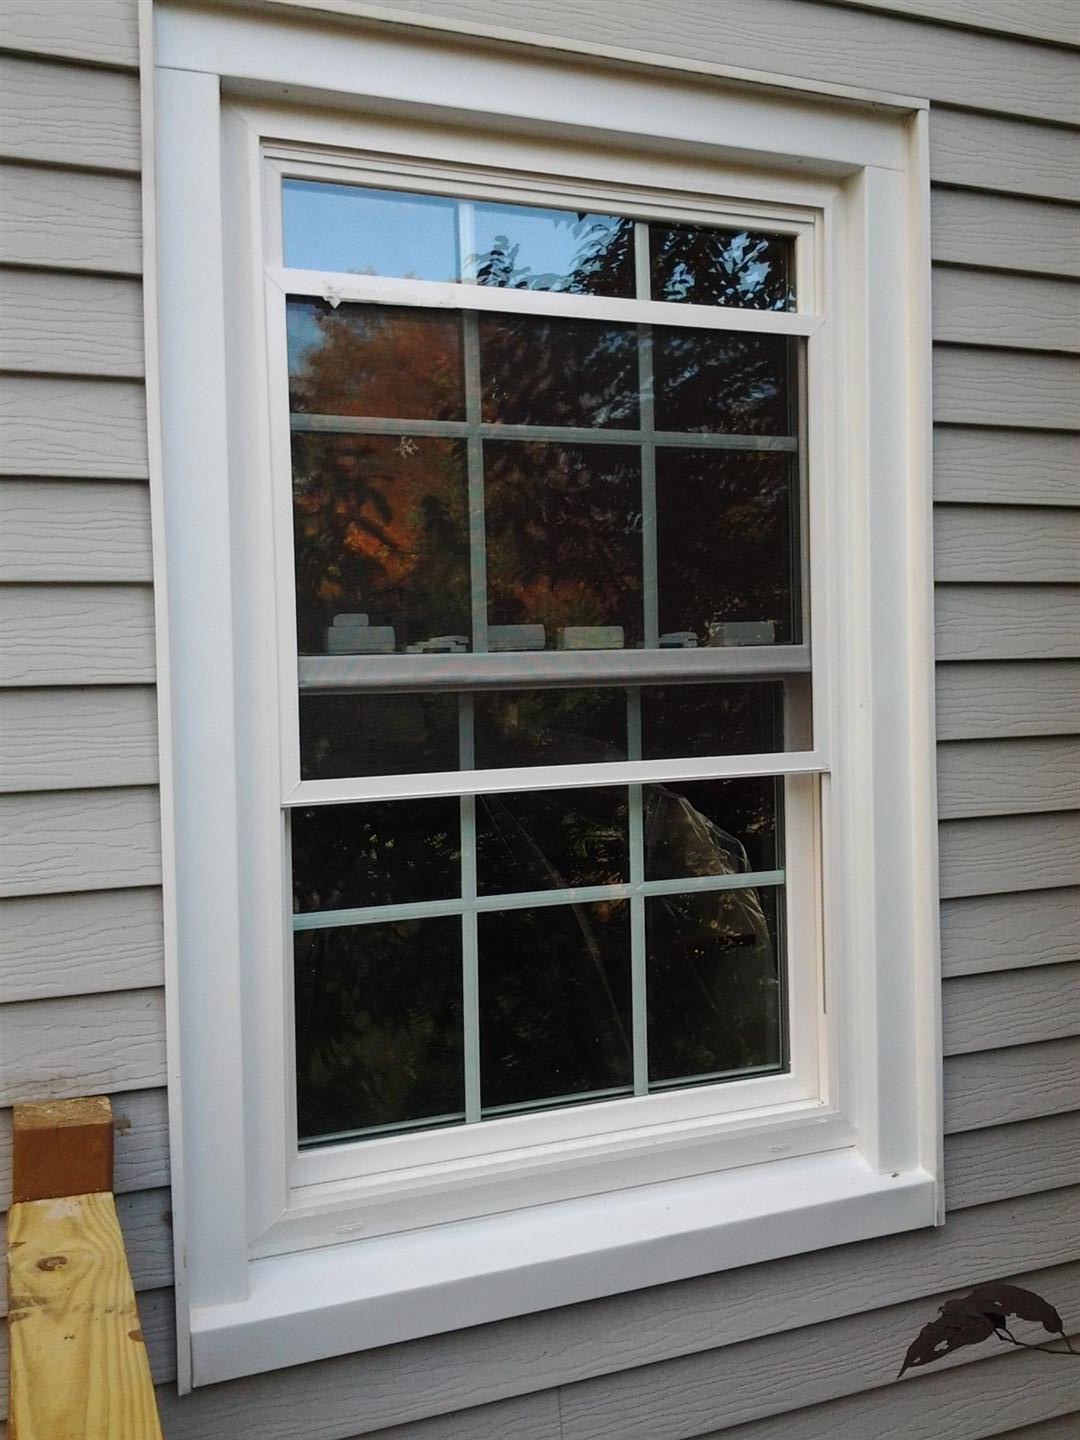 Call m m construction specialist at 908 378 5951 to for Vinyl home windows